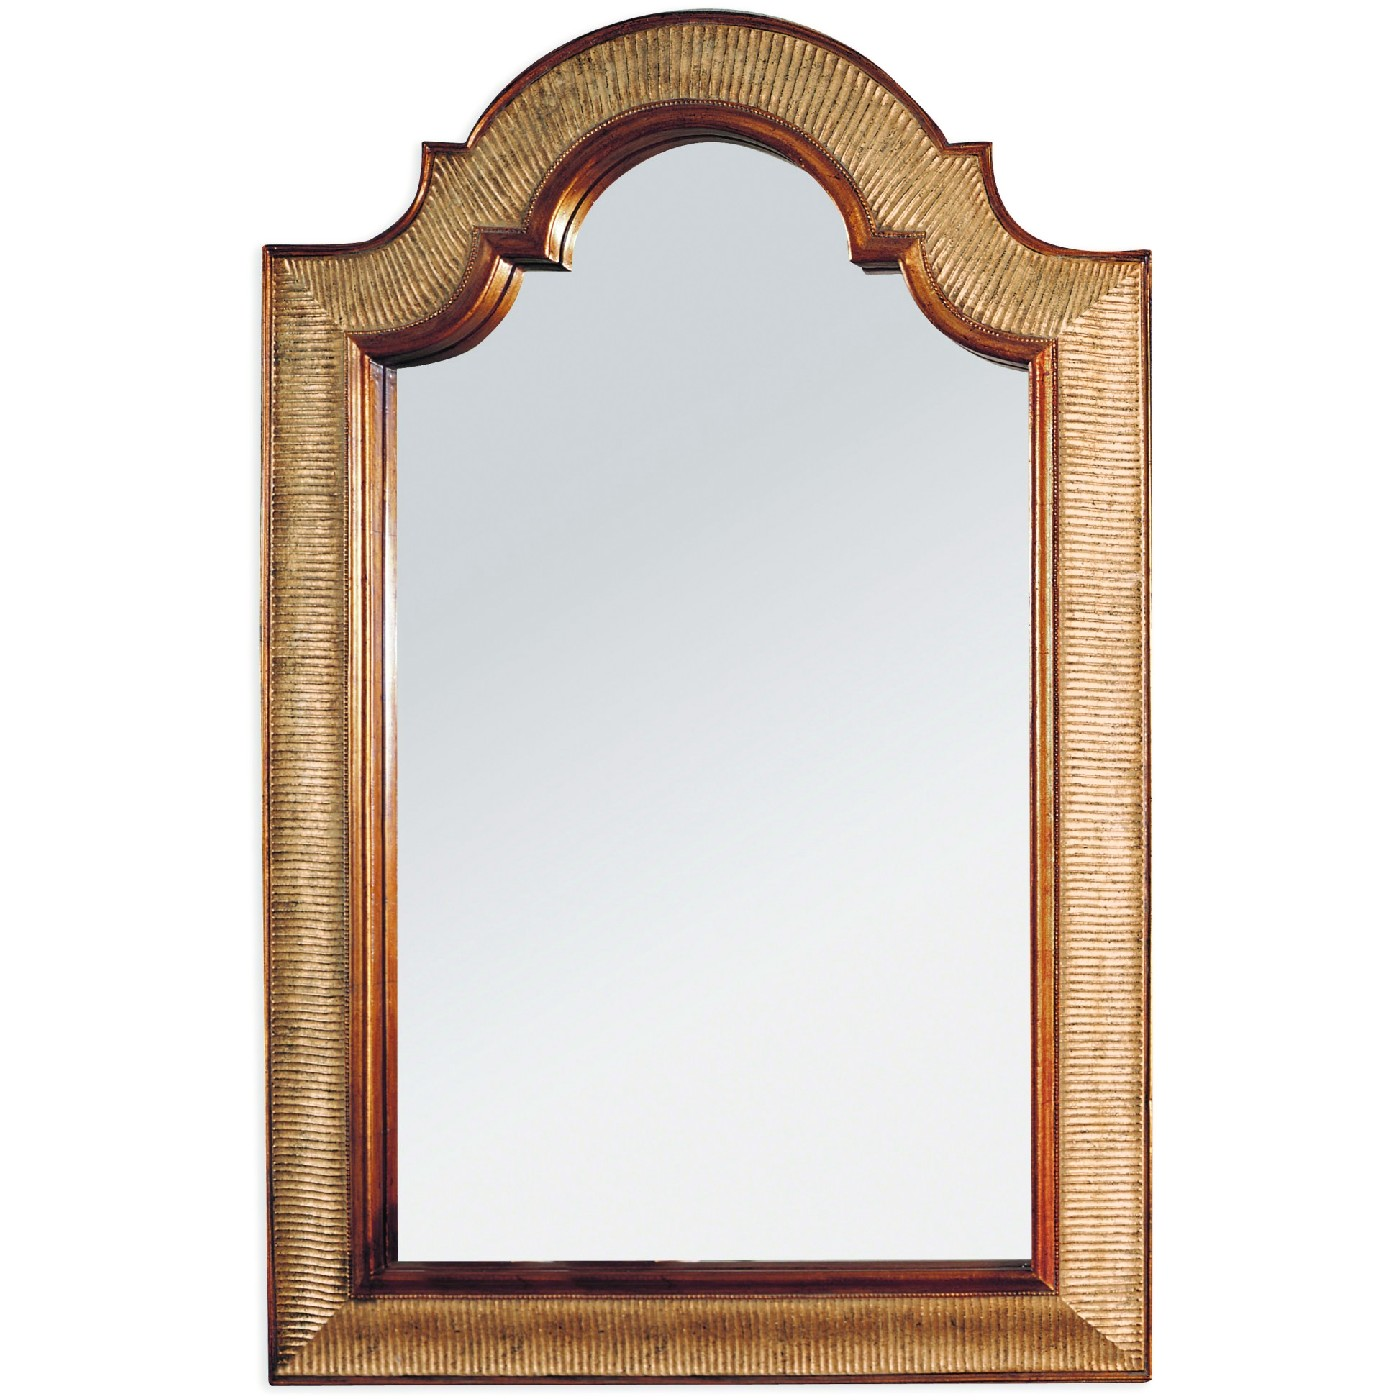 Excelsior Ornate Traditional Wall Mirror 6331 032ec